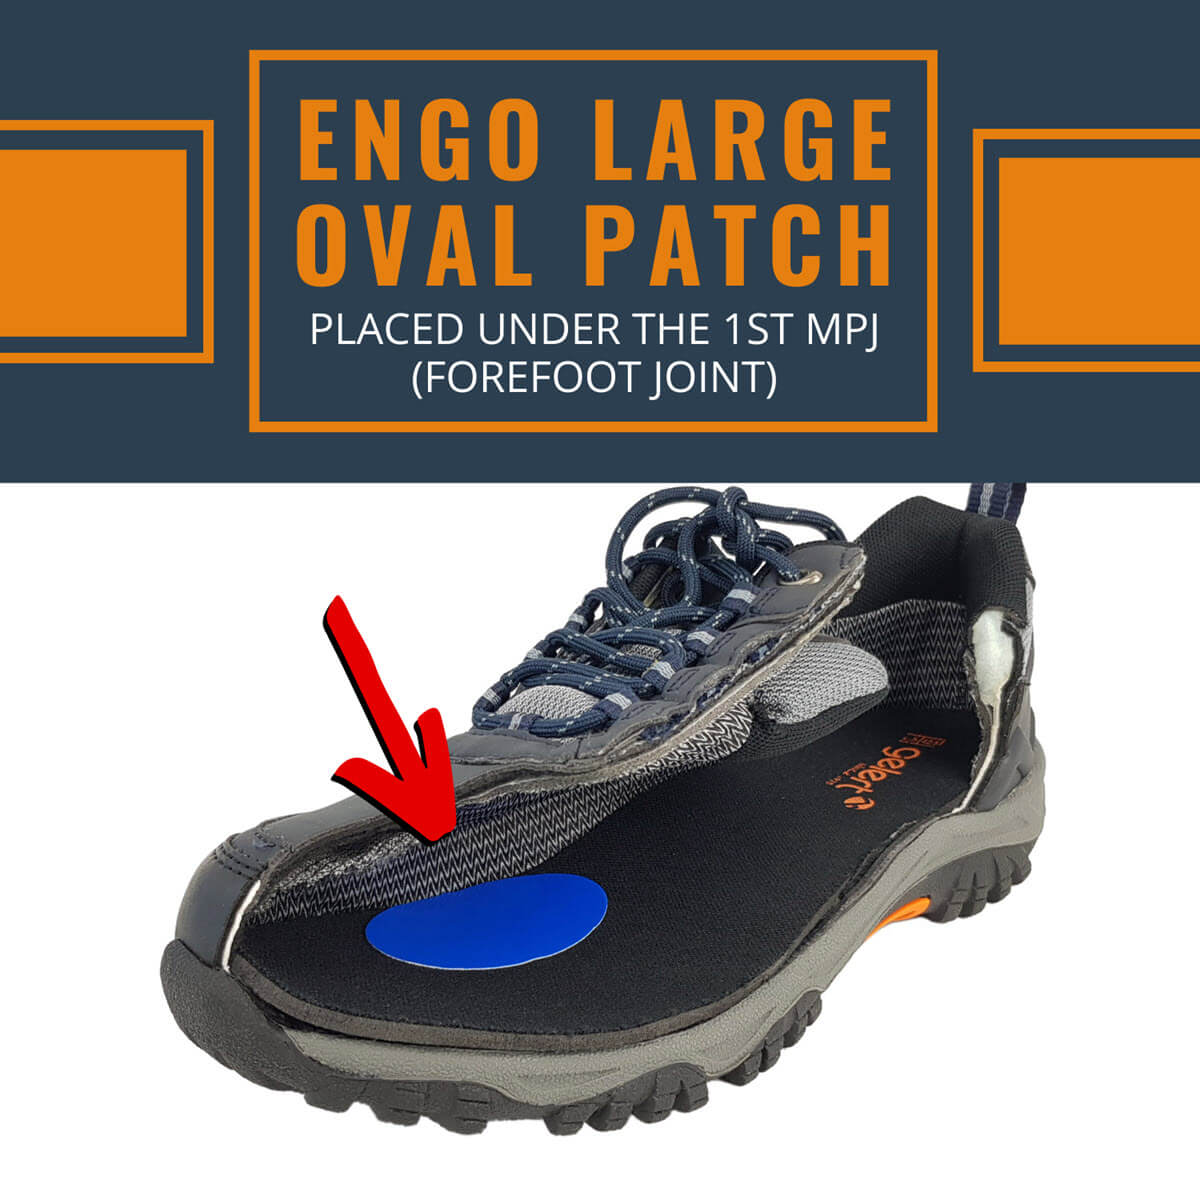 ENGO Blister Patches 4-Pack 6-Pack 30-Pack large oval applied under the first forefoot joint